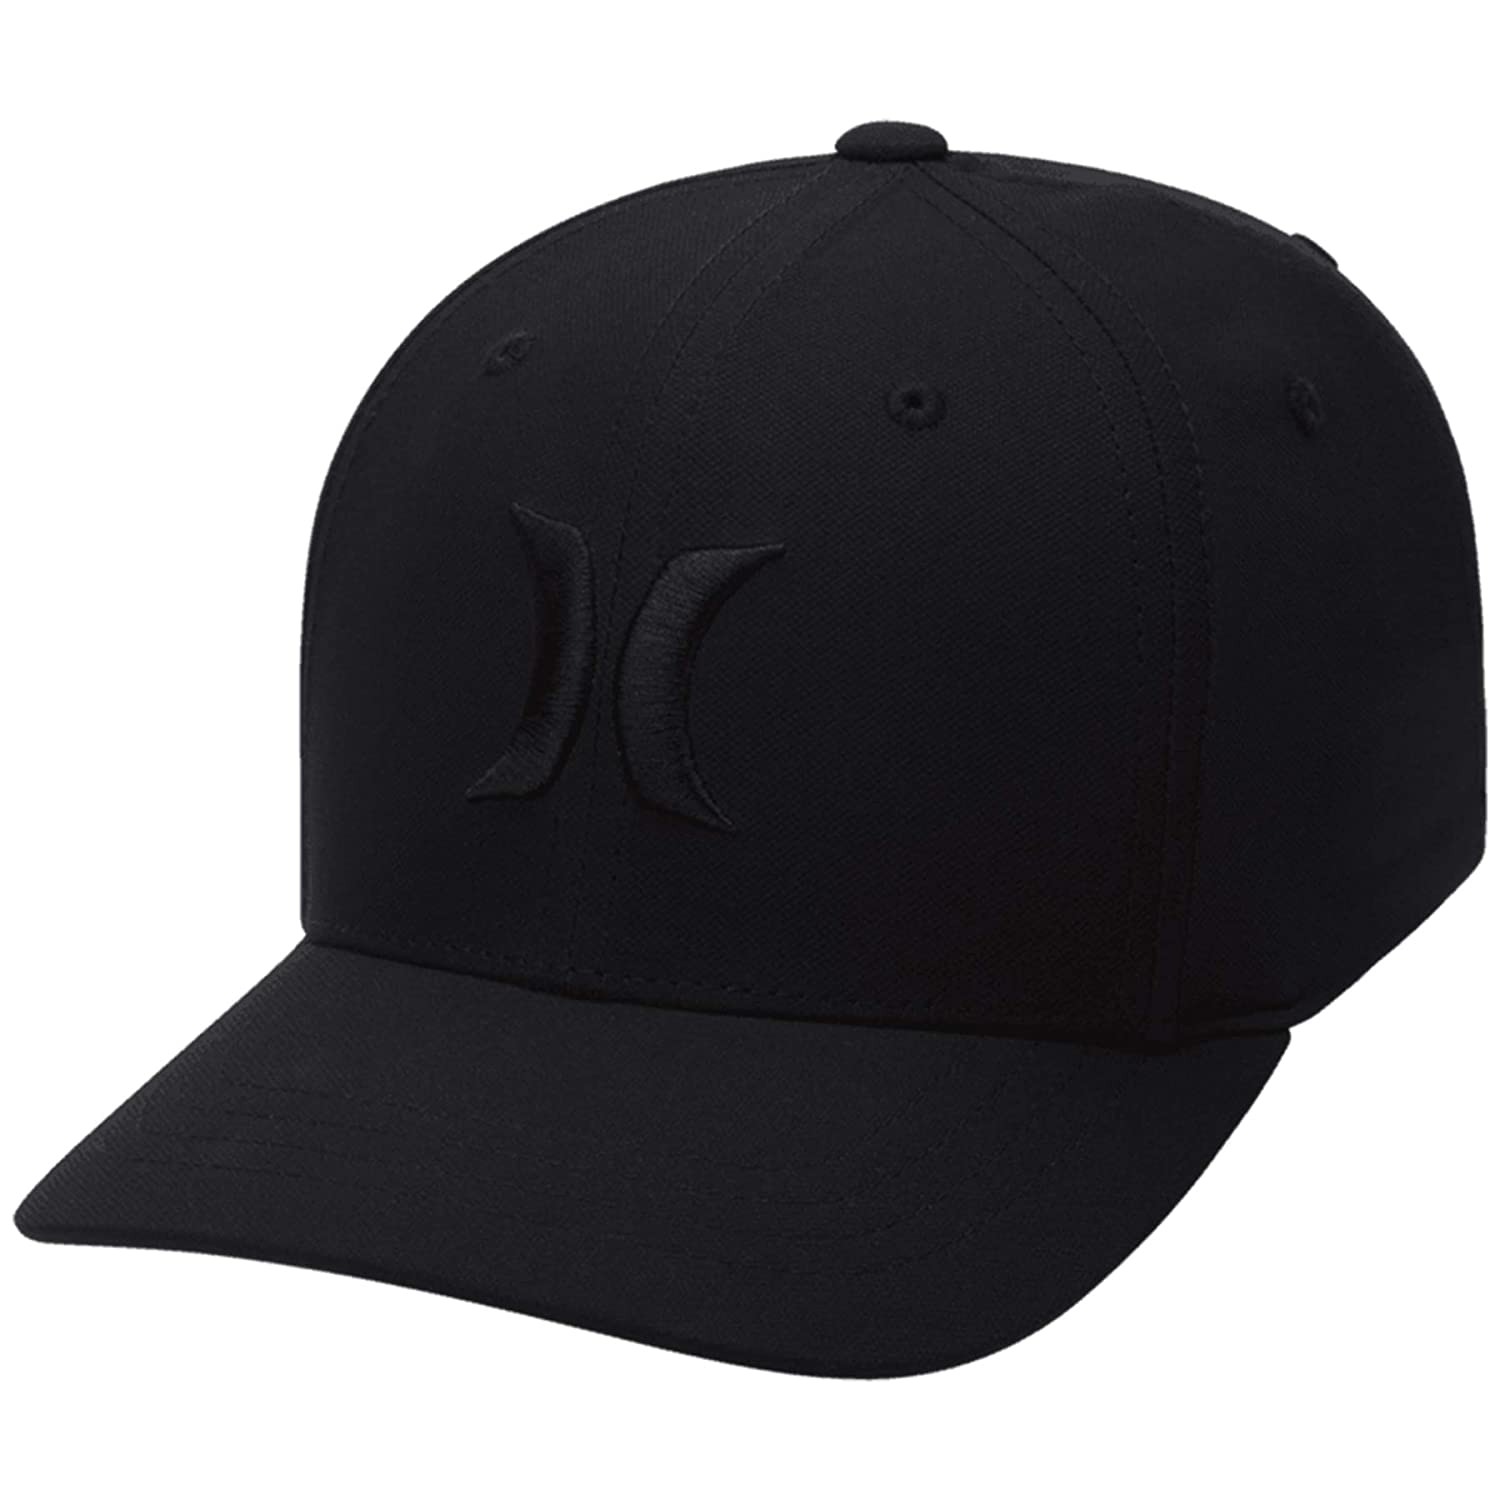 3df6e86c42511 Amazon.com  Hurley AO4101 Men s Dri-Fit One and Only Hat